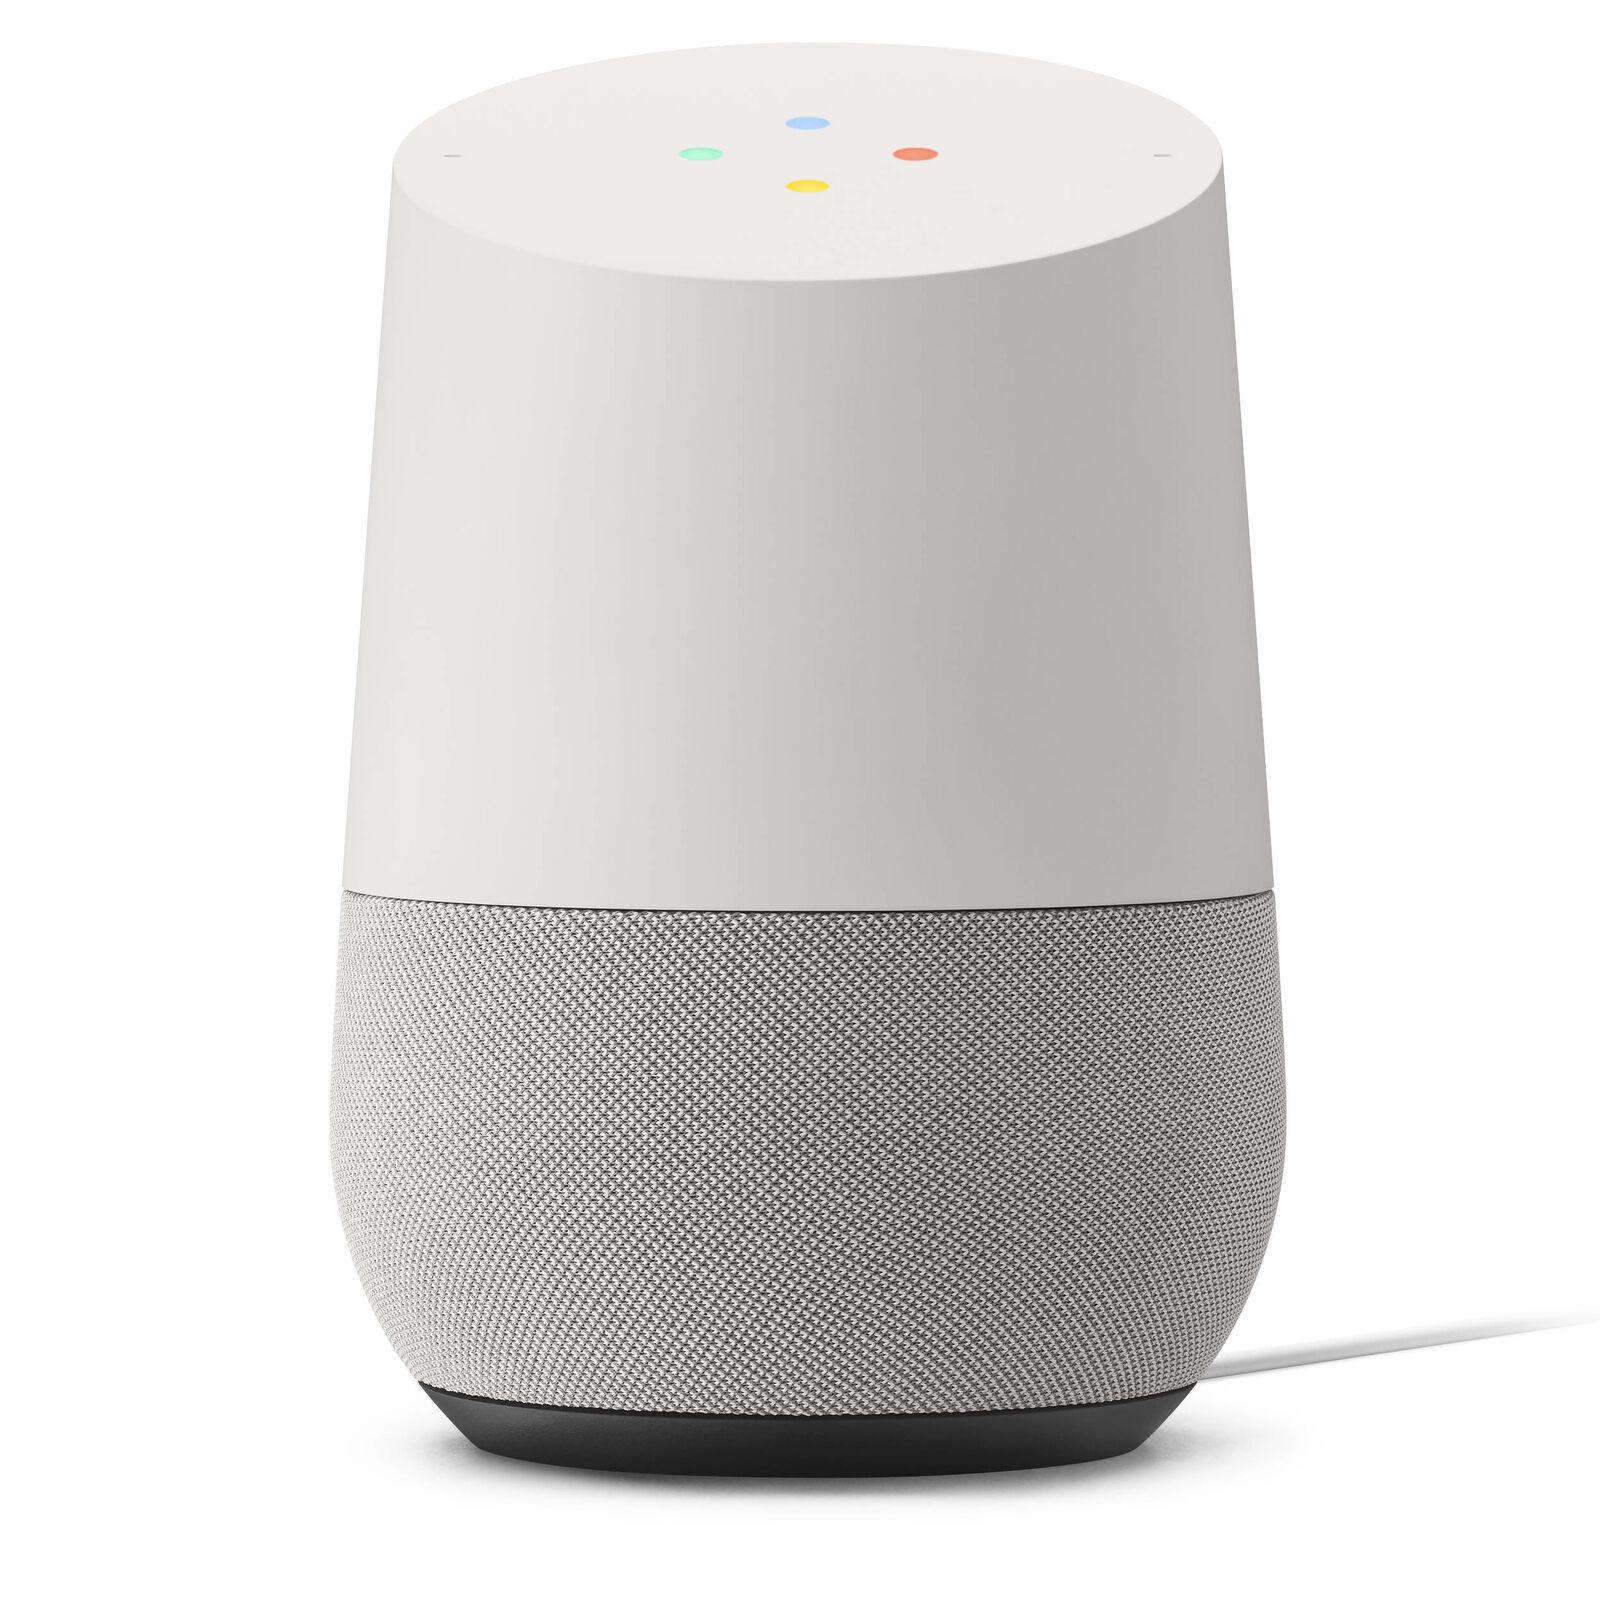 Google Home - White Slate Personal Assistant - Tested Working   O6596